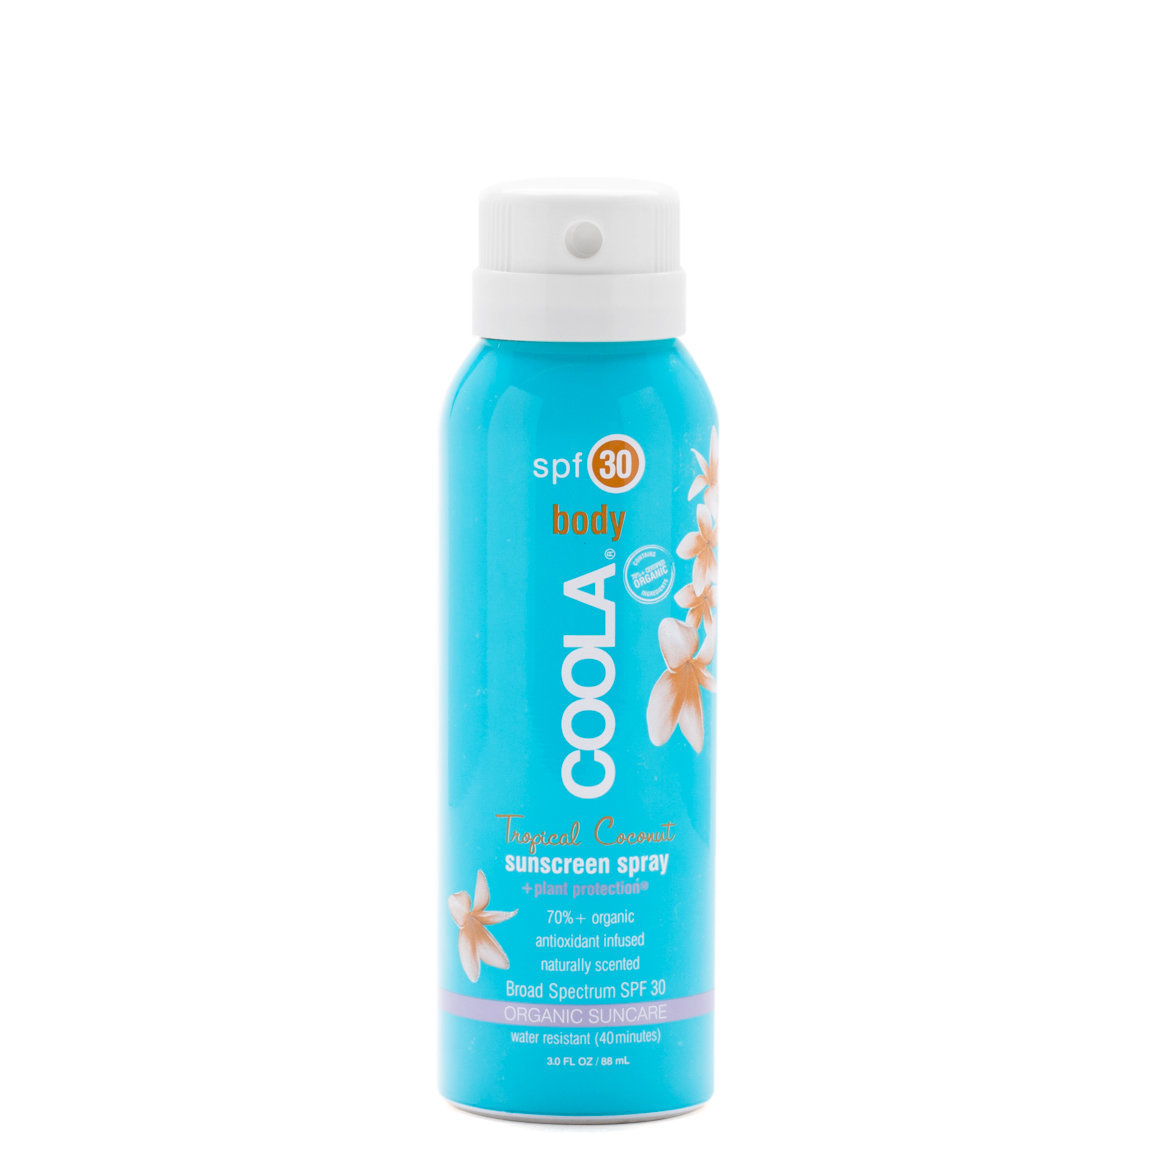 COOLA Travel Sport Sunscreen Spray SPF 30 Tropical Coconut product swatch.